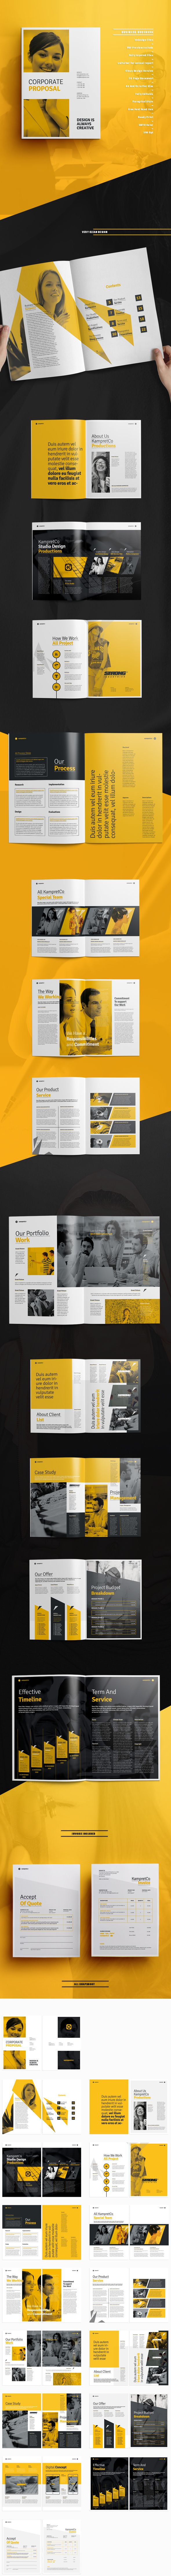 a4, agency proposal, brand, brief, brochure design, business ...